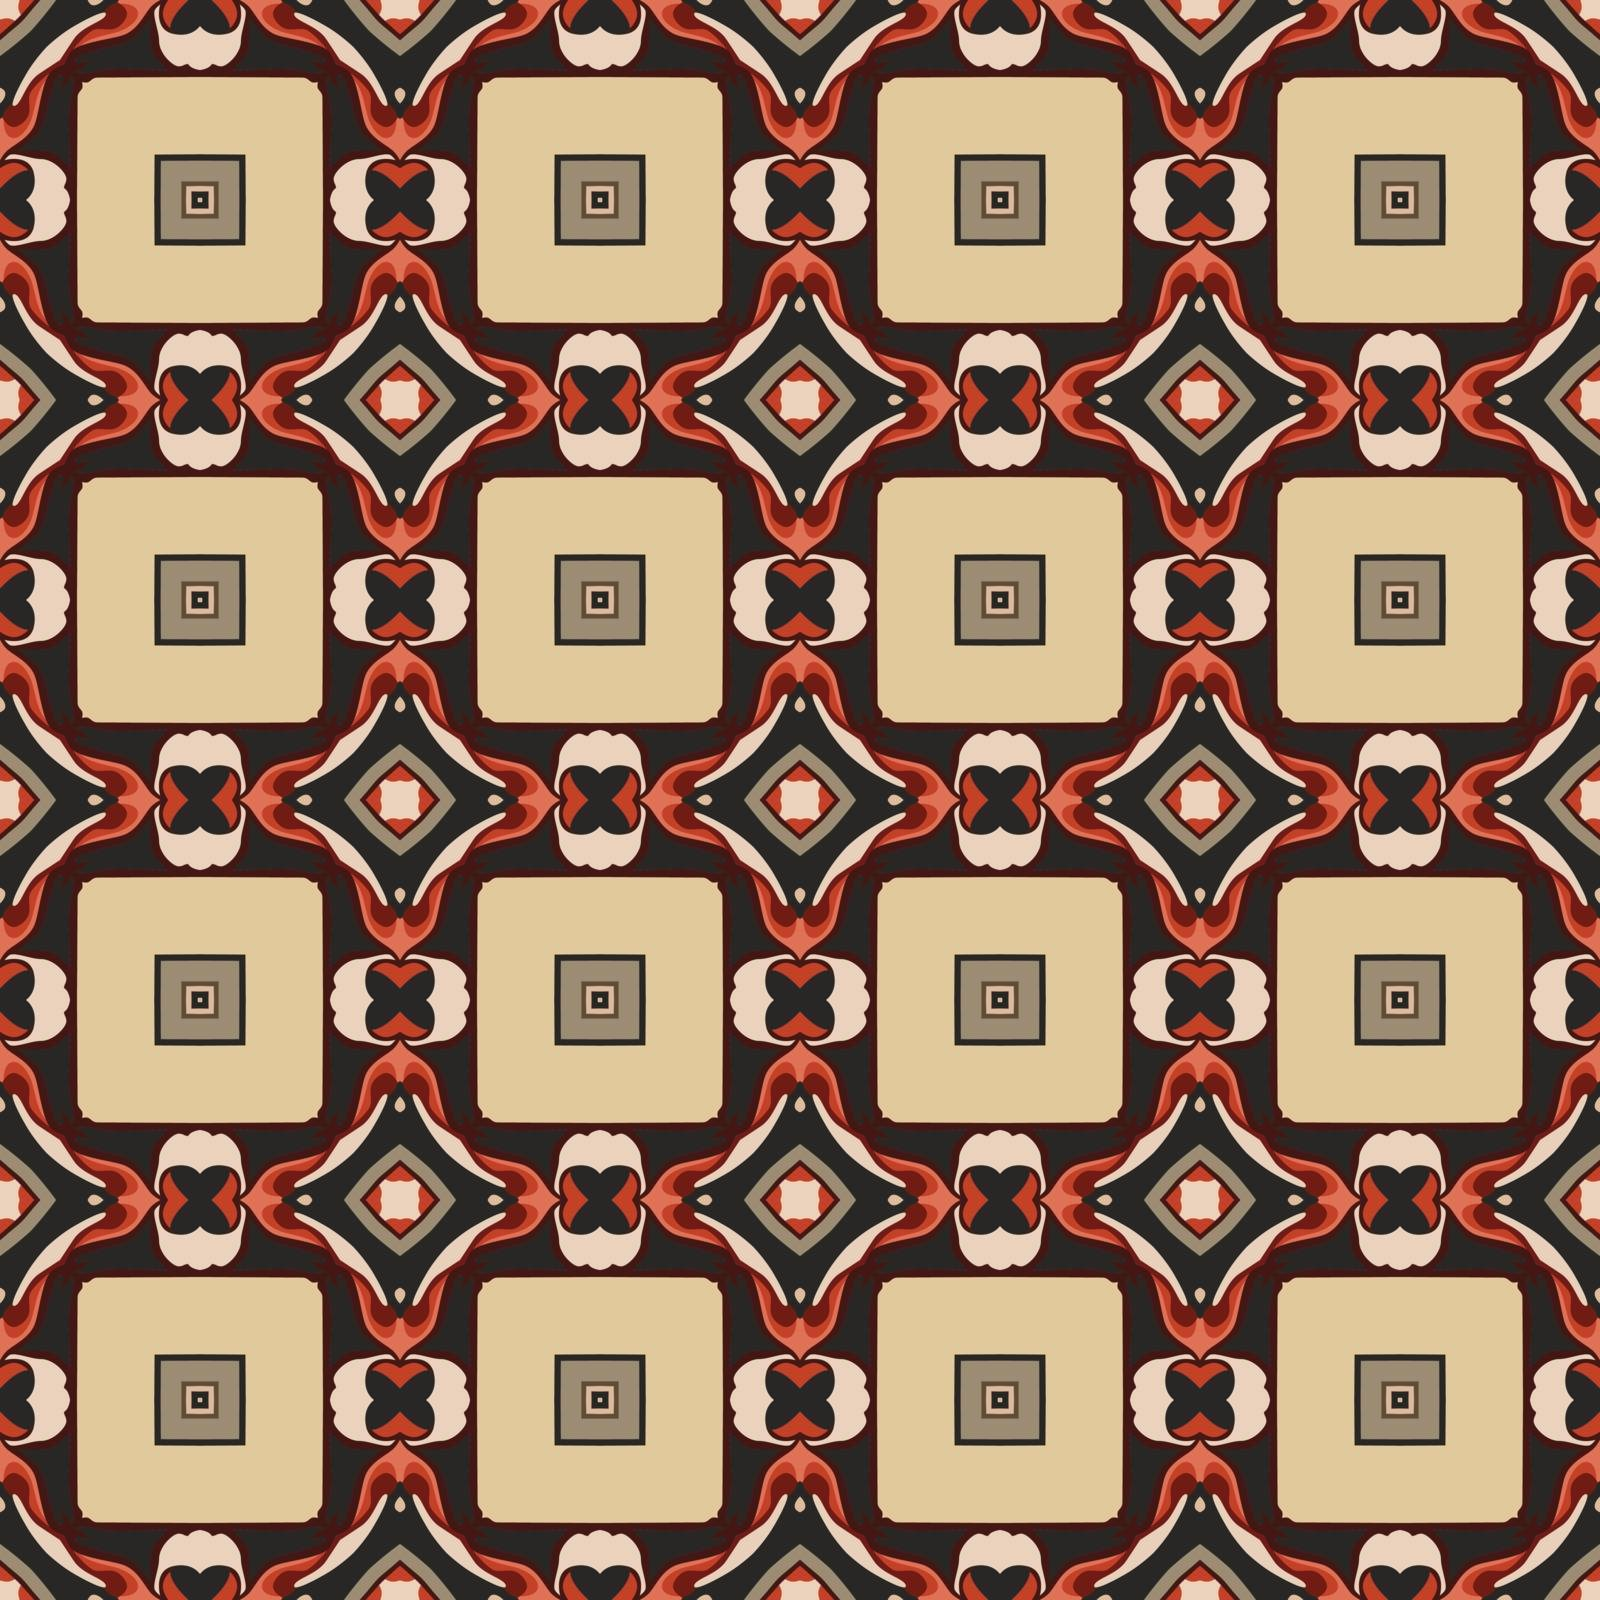 Seamless illustrated pattern made of abstract elements in beige, yellow, red, gray and black